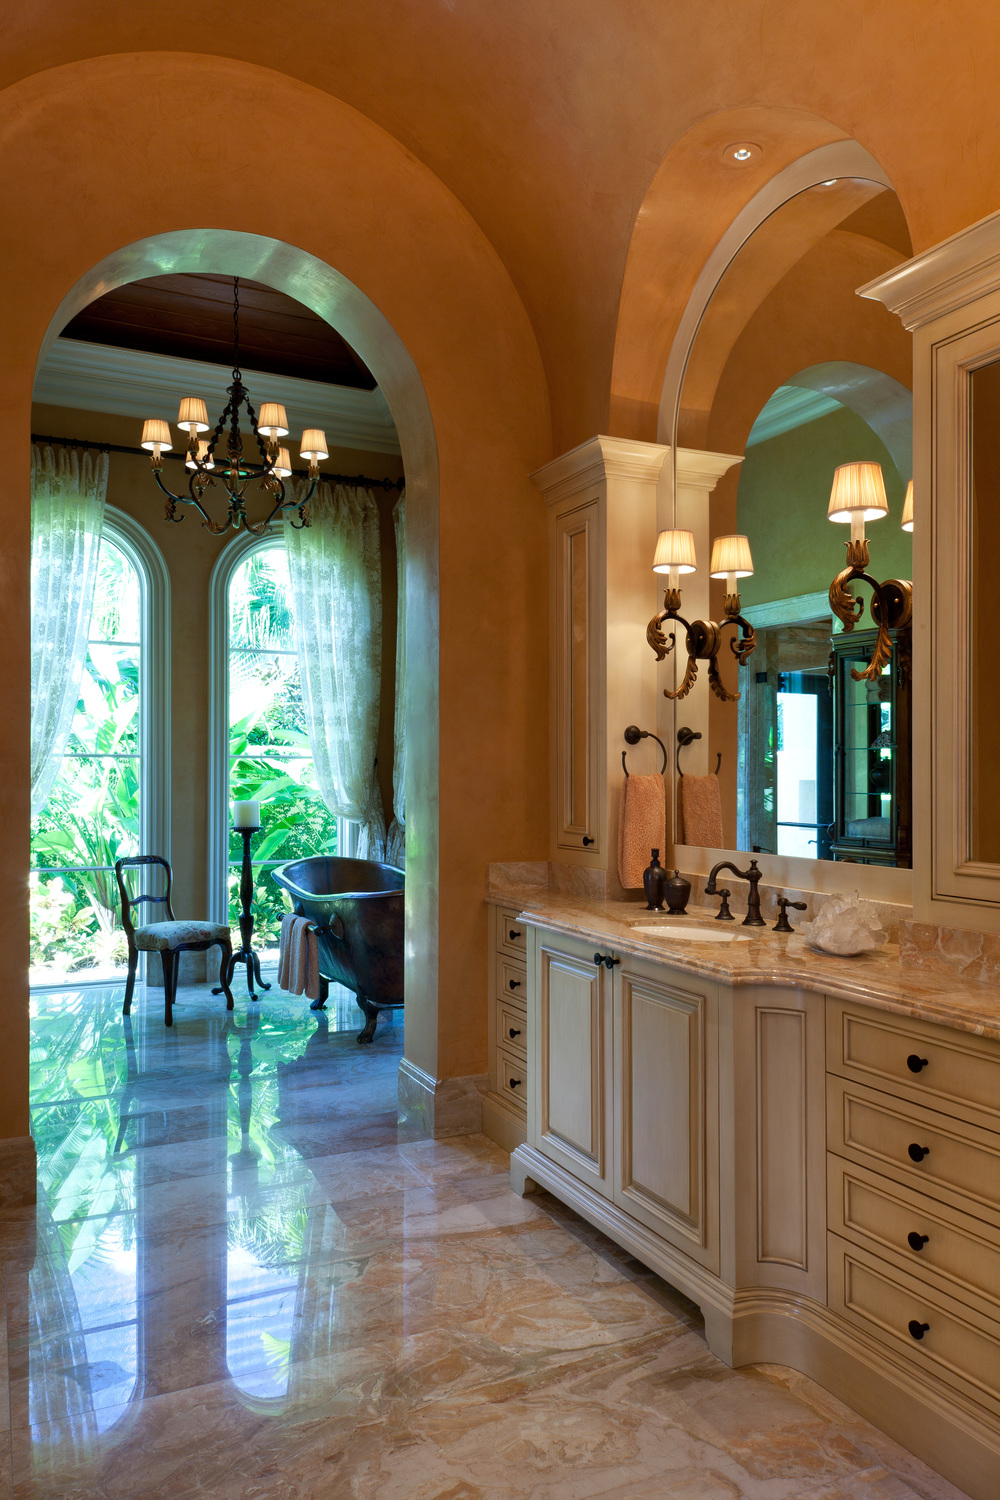 As in the other rooms in this exquisite Florida home, the architectural and cabinetry details were painstakingly developed to contribute to the interior design character individually and to work together beautifully. Here, the circles of the vanity mirrors reference the barrel vaulting of the ceiling and all the cabinetry was designed to enhance the volume. Venetian plaster, painted millwork and bronze fittings work well with the magnificent breccias oniciata marble slab flooring.